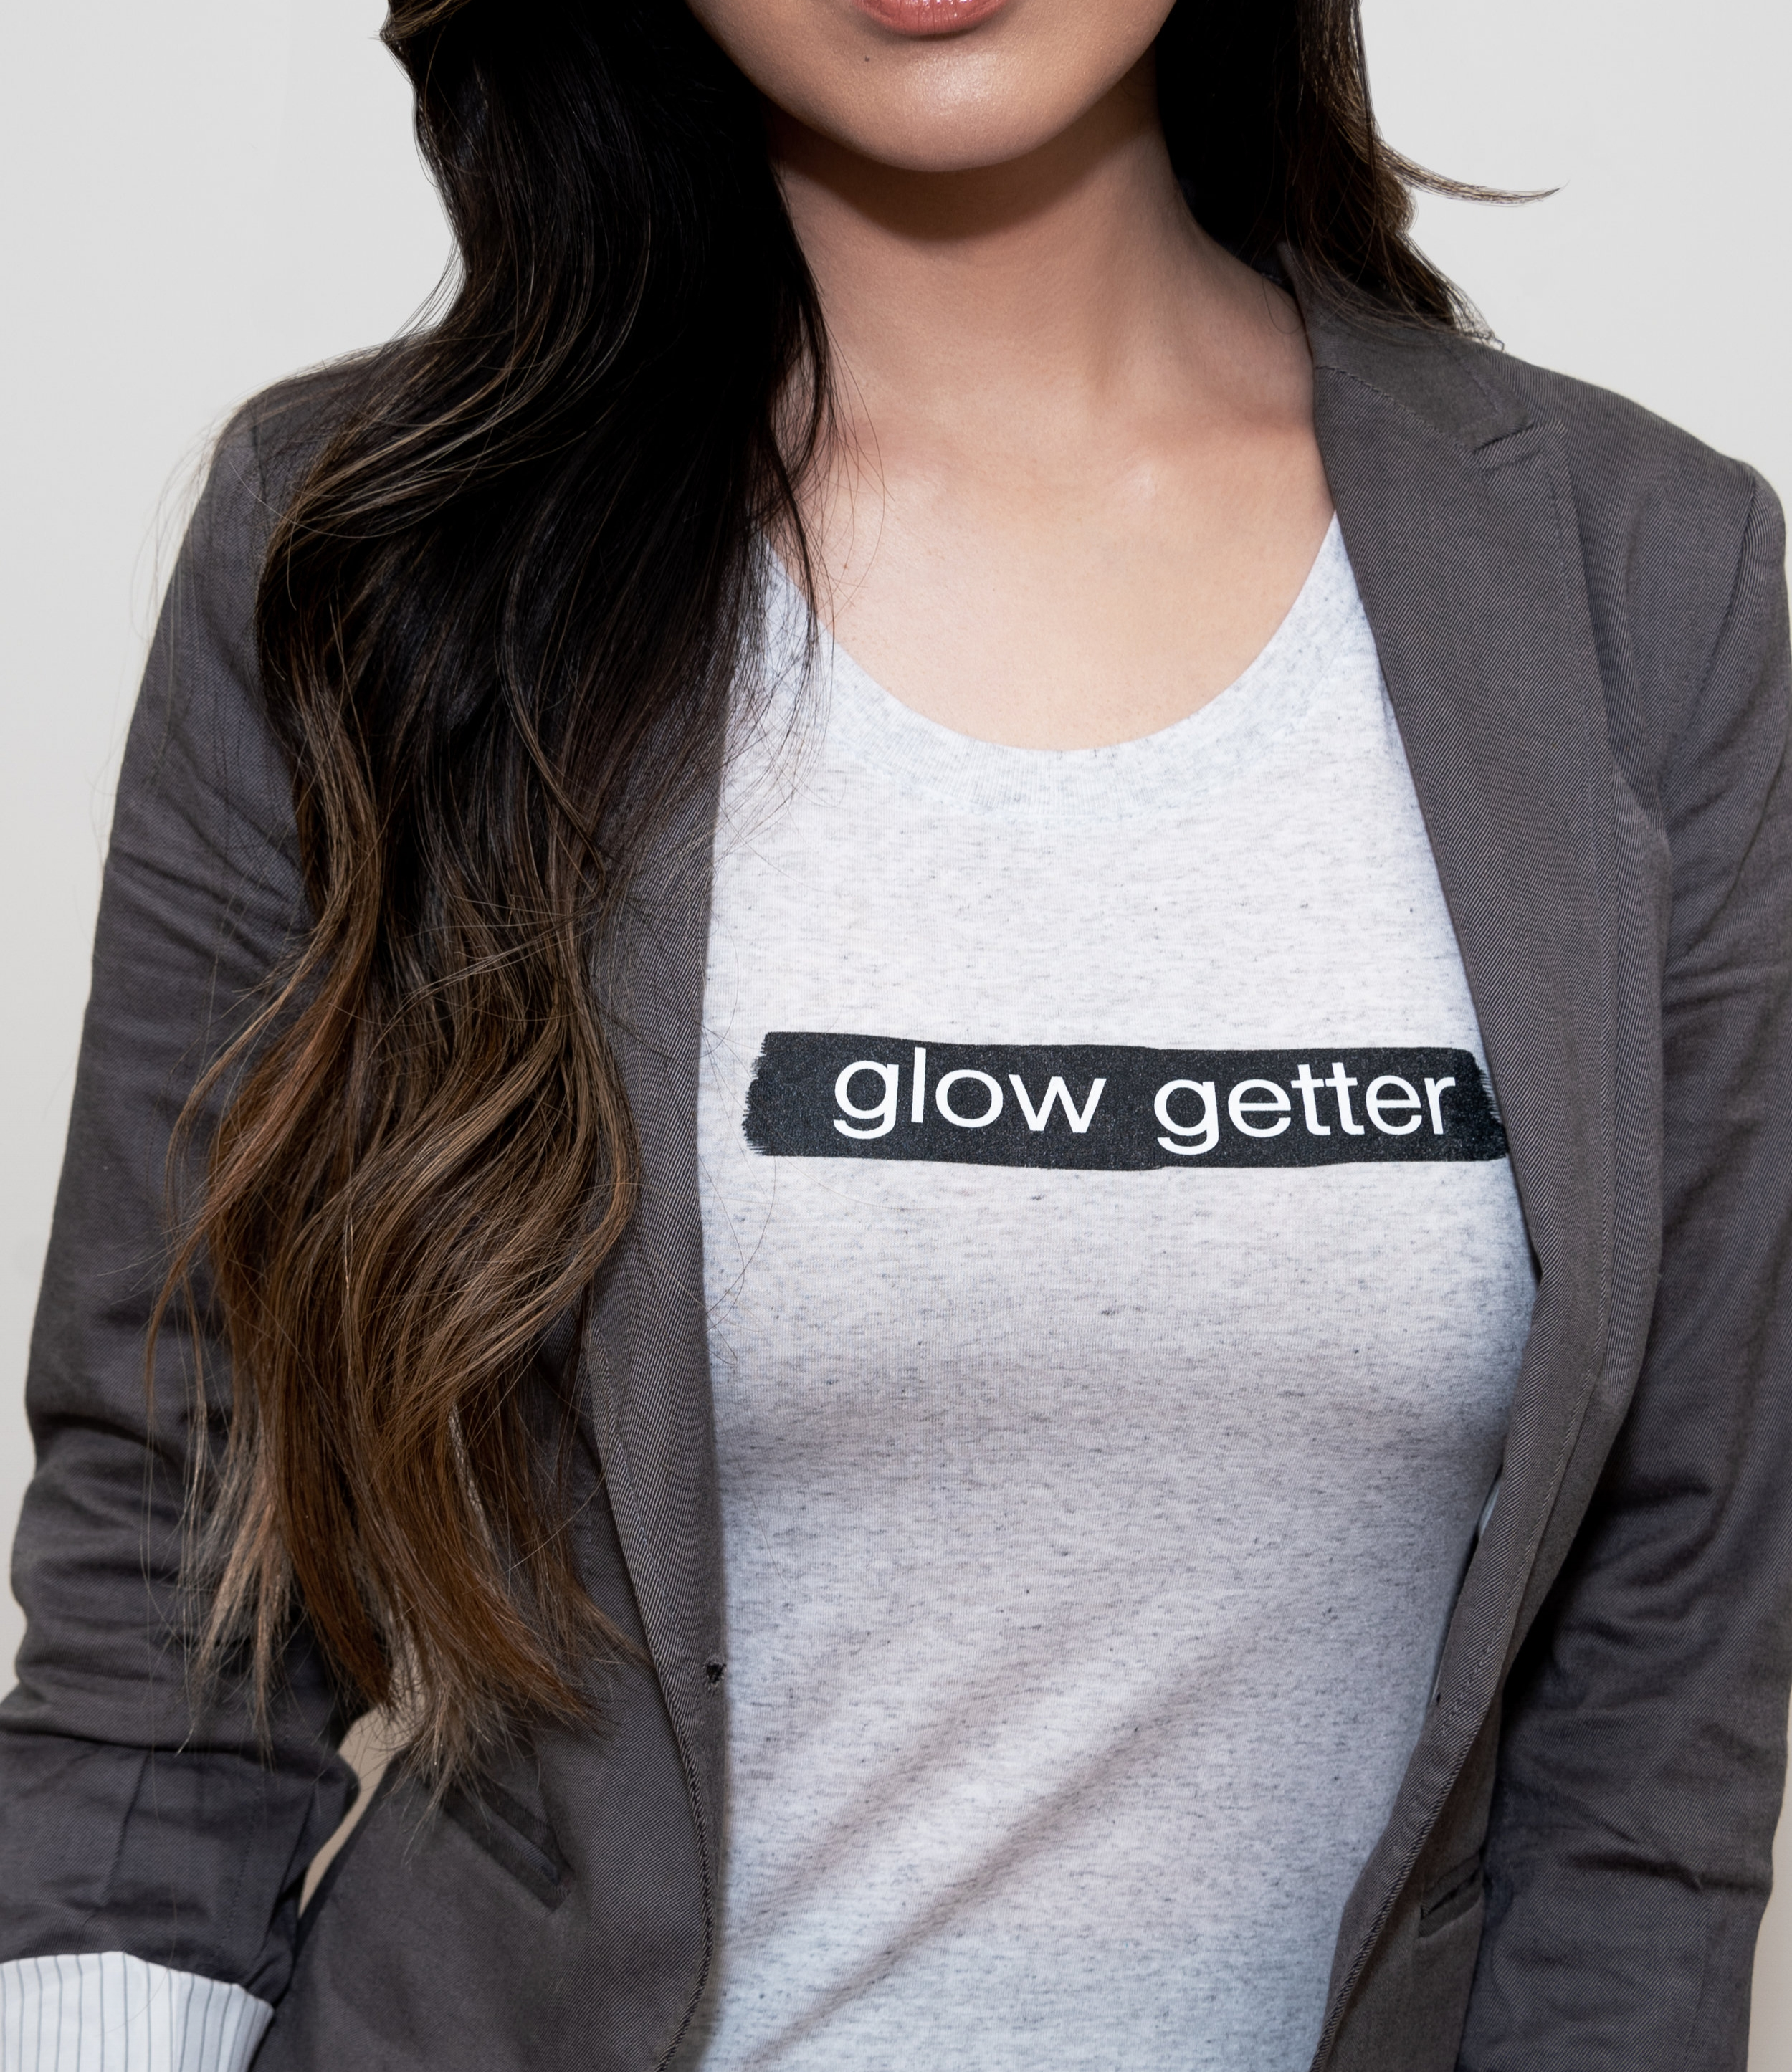 GLOW GETTER - (noun) A boss who is determined to achieve their goals in life while maintaining a beautiful glow on the inside and out. A diva. A hustler.